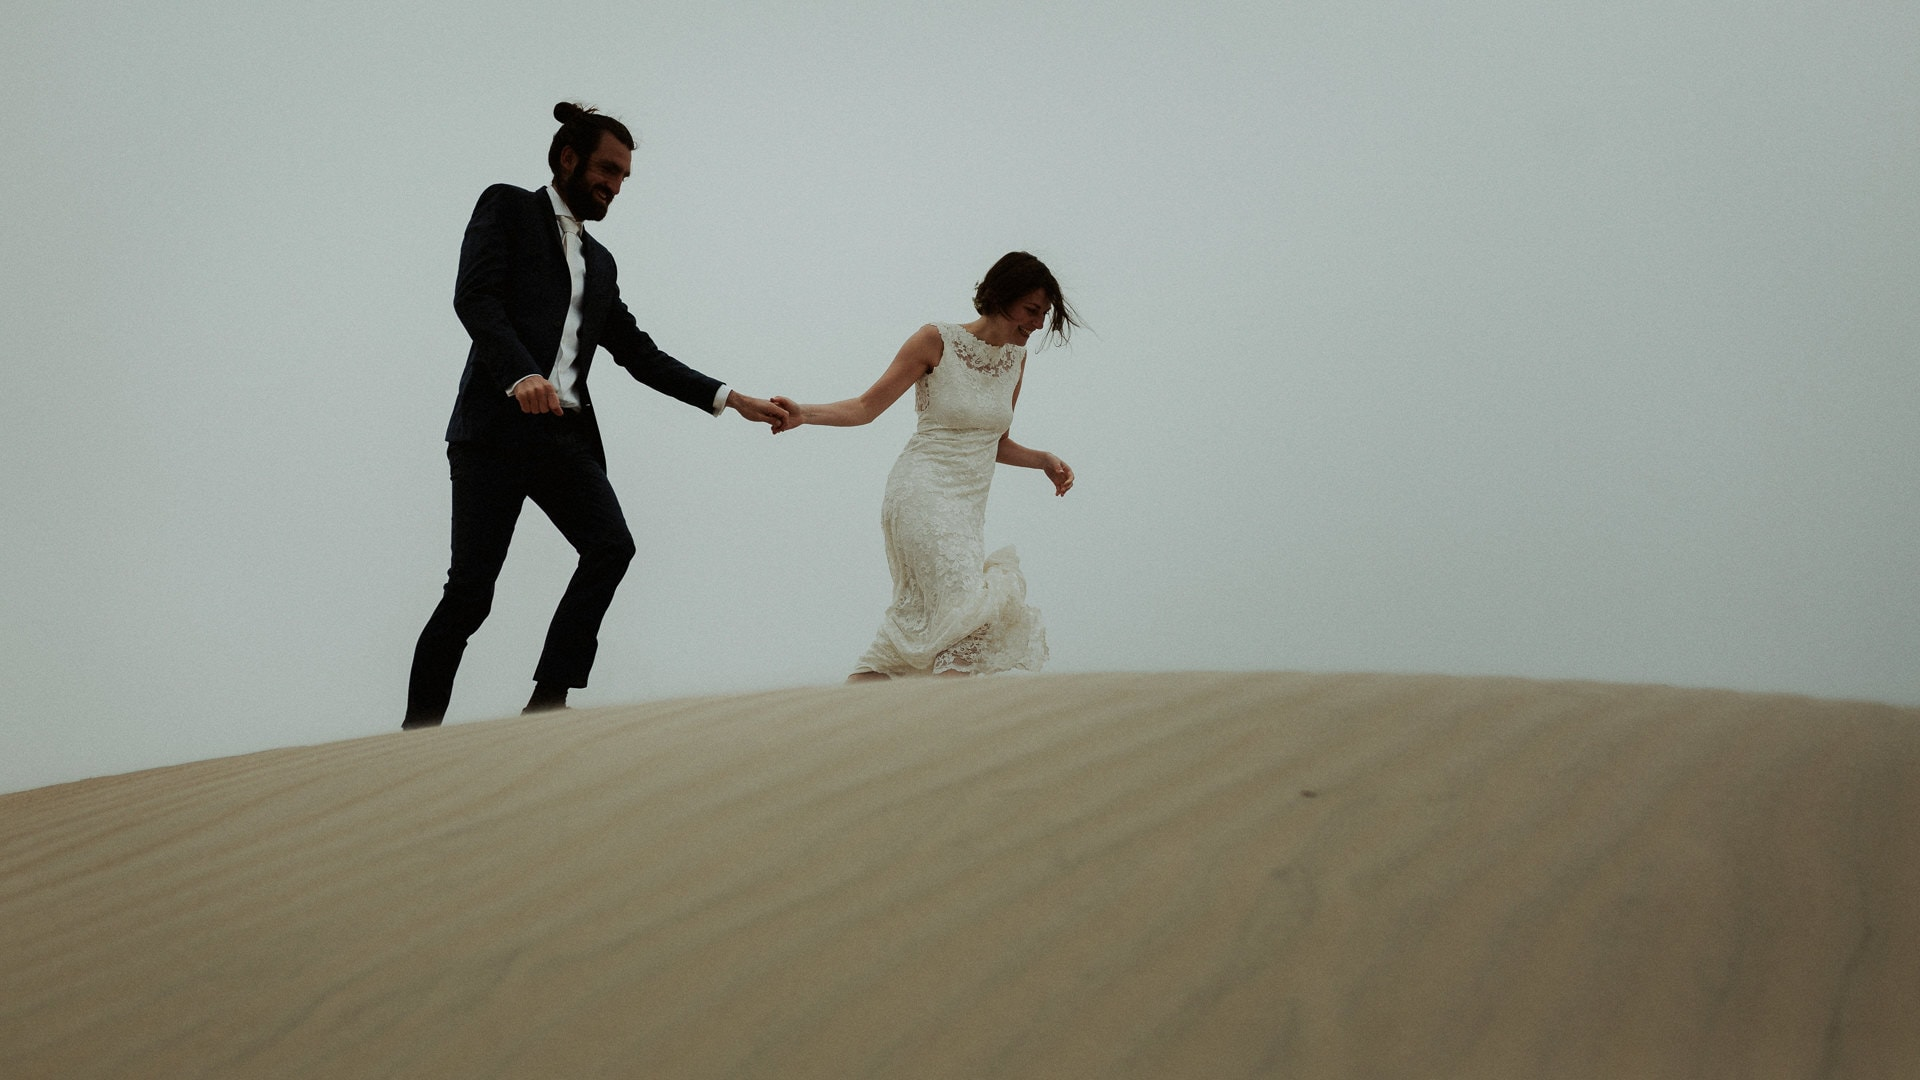 Denmark Wedding Photographer Klitmoeller Surf Elopement 0013